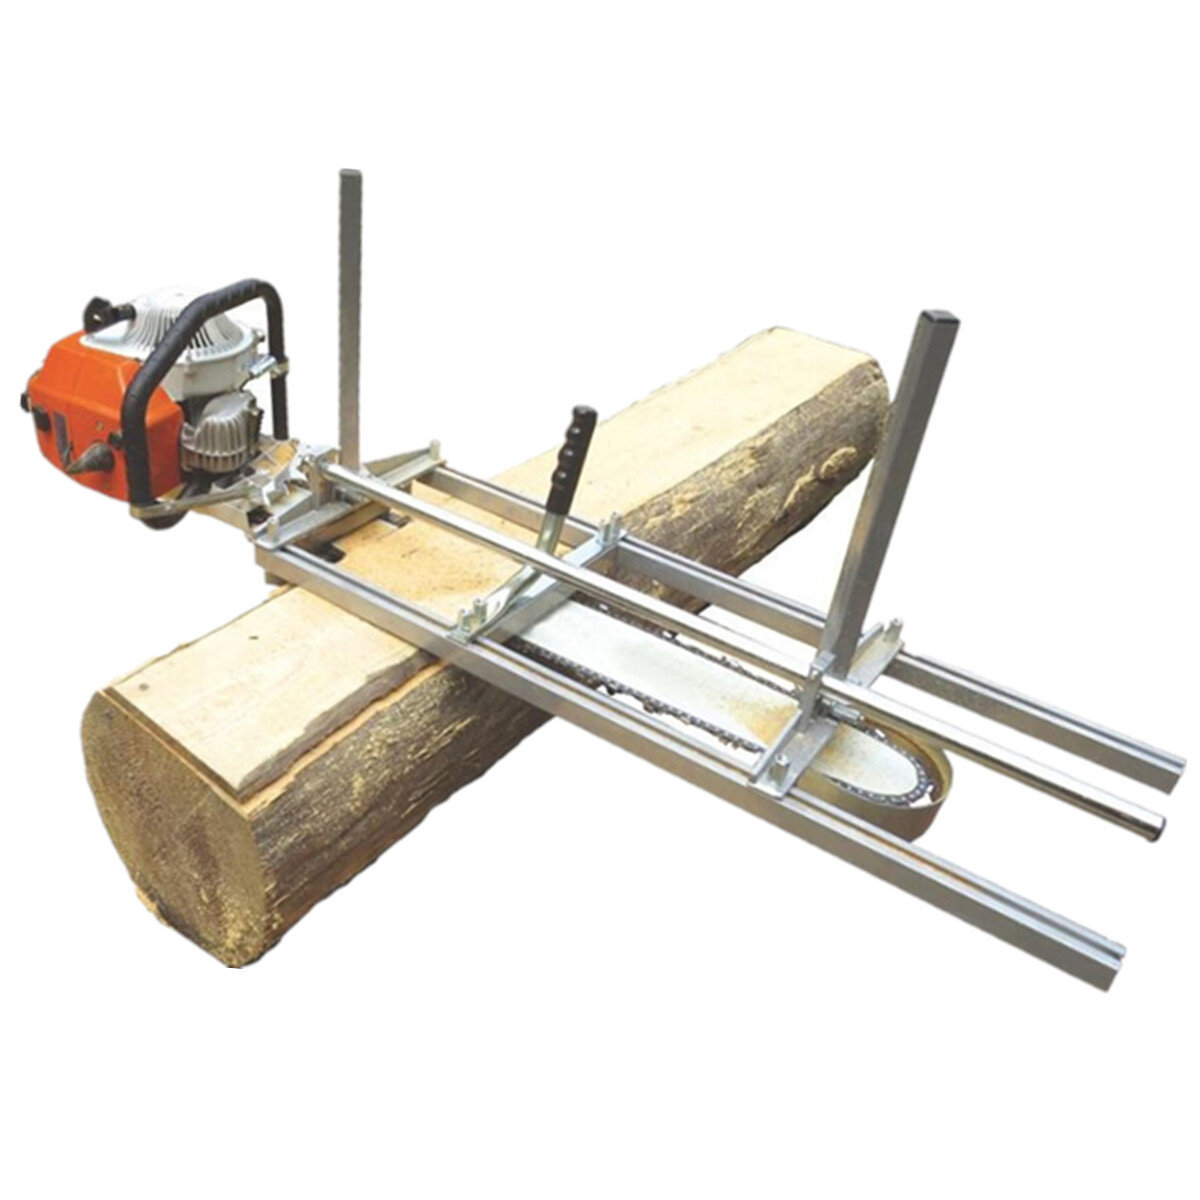 """Portable Chainsaw Mill Planking Milling From 18"""" to 48"""" Guide Bar Chainsaws Chain Saws Lumber Cutting Tool Kit"""